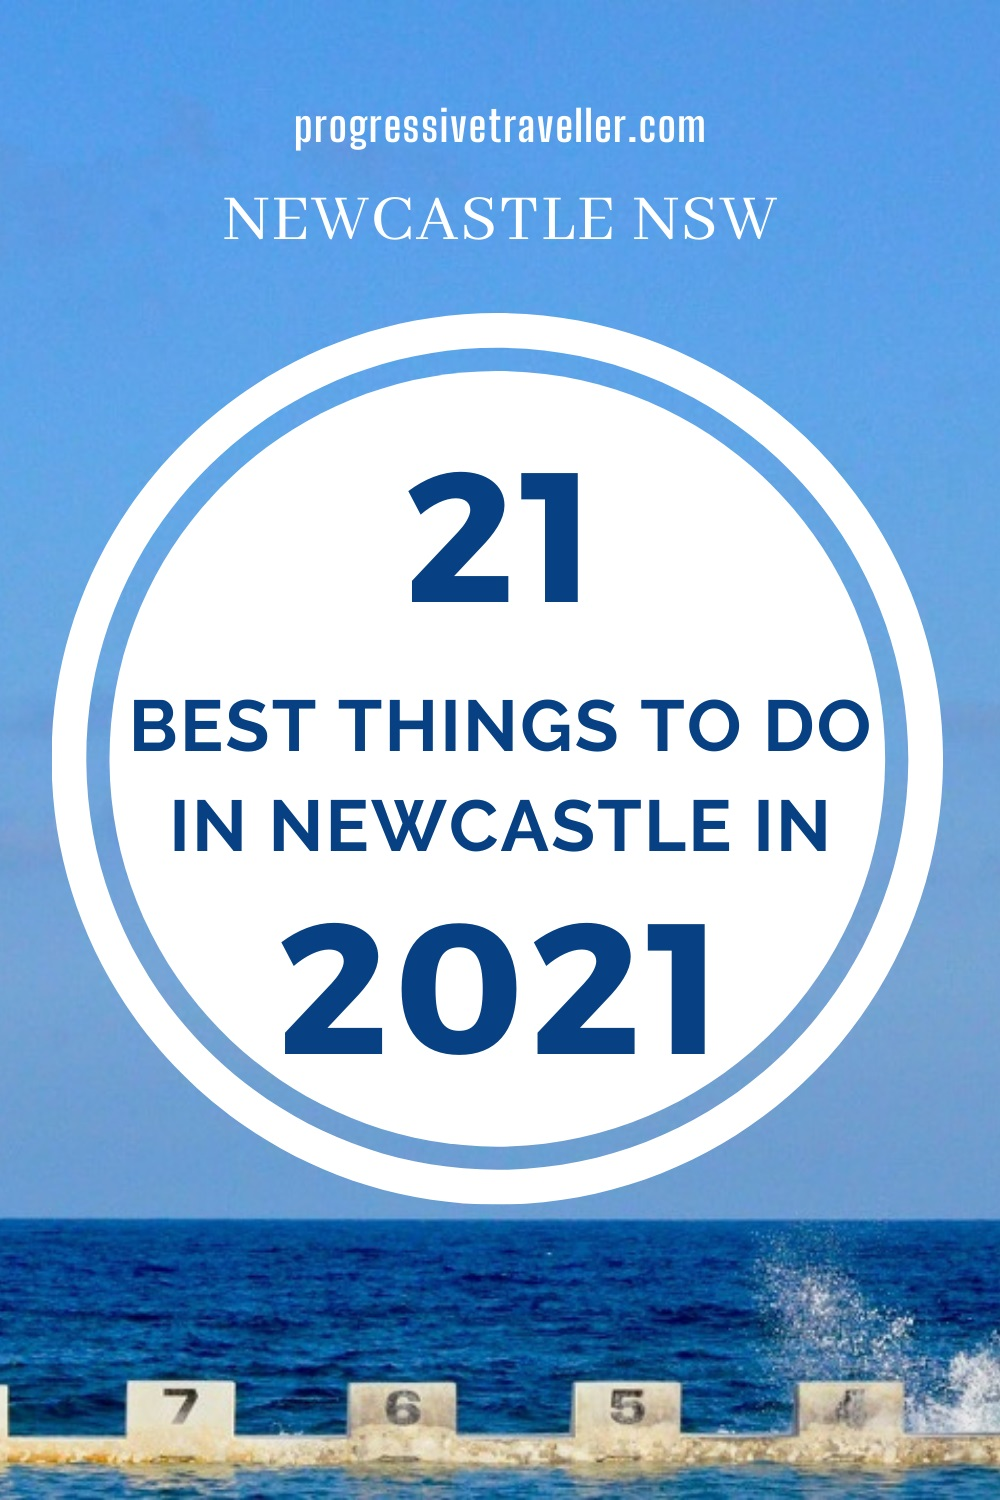 21 Best Things to Do in Newcastle NSW